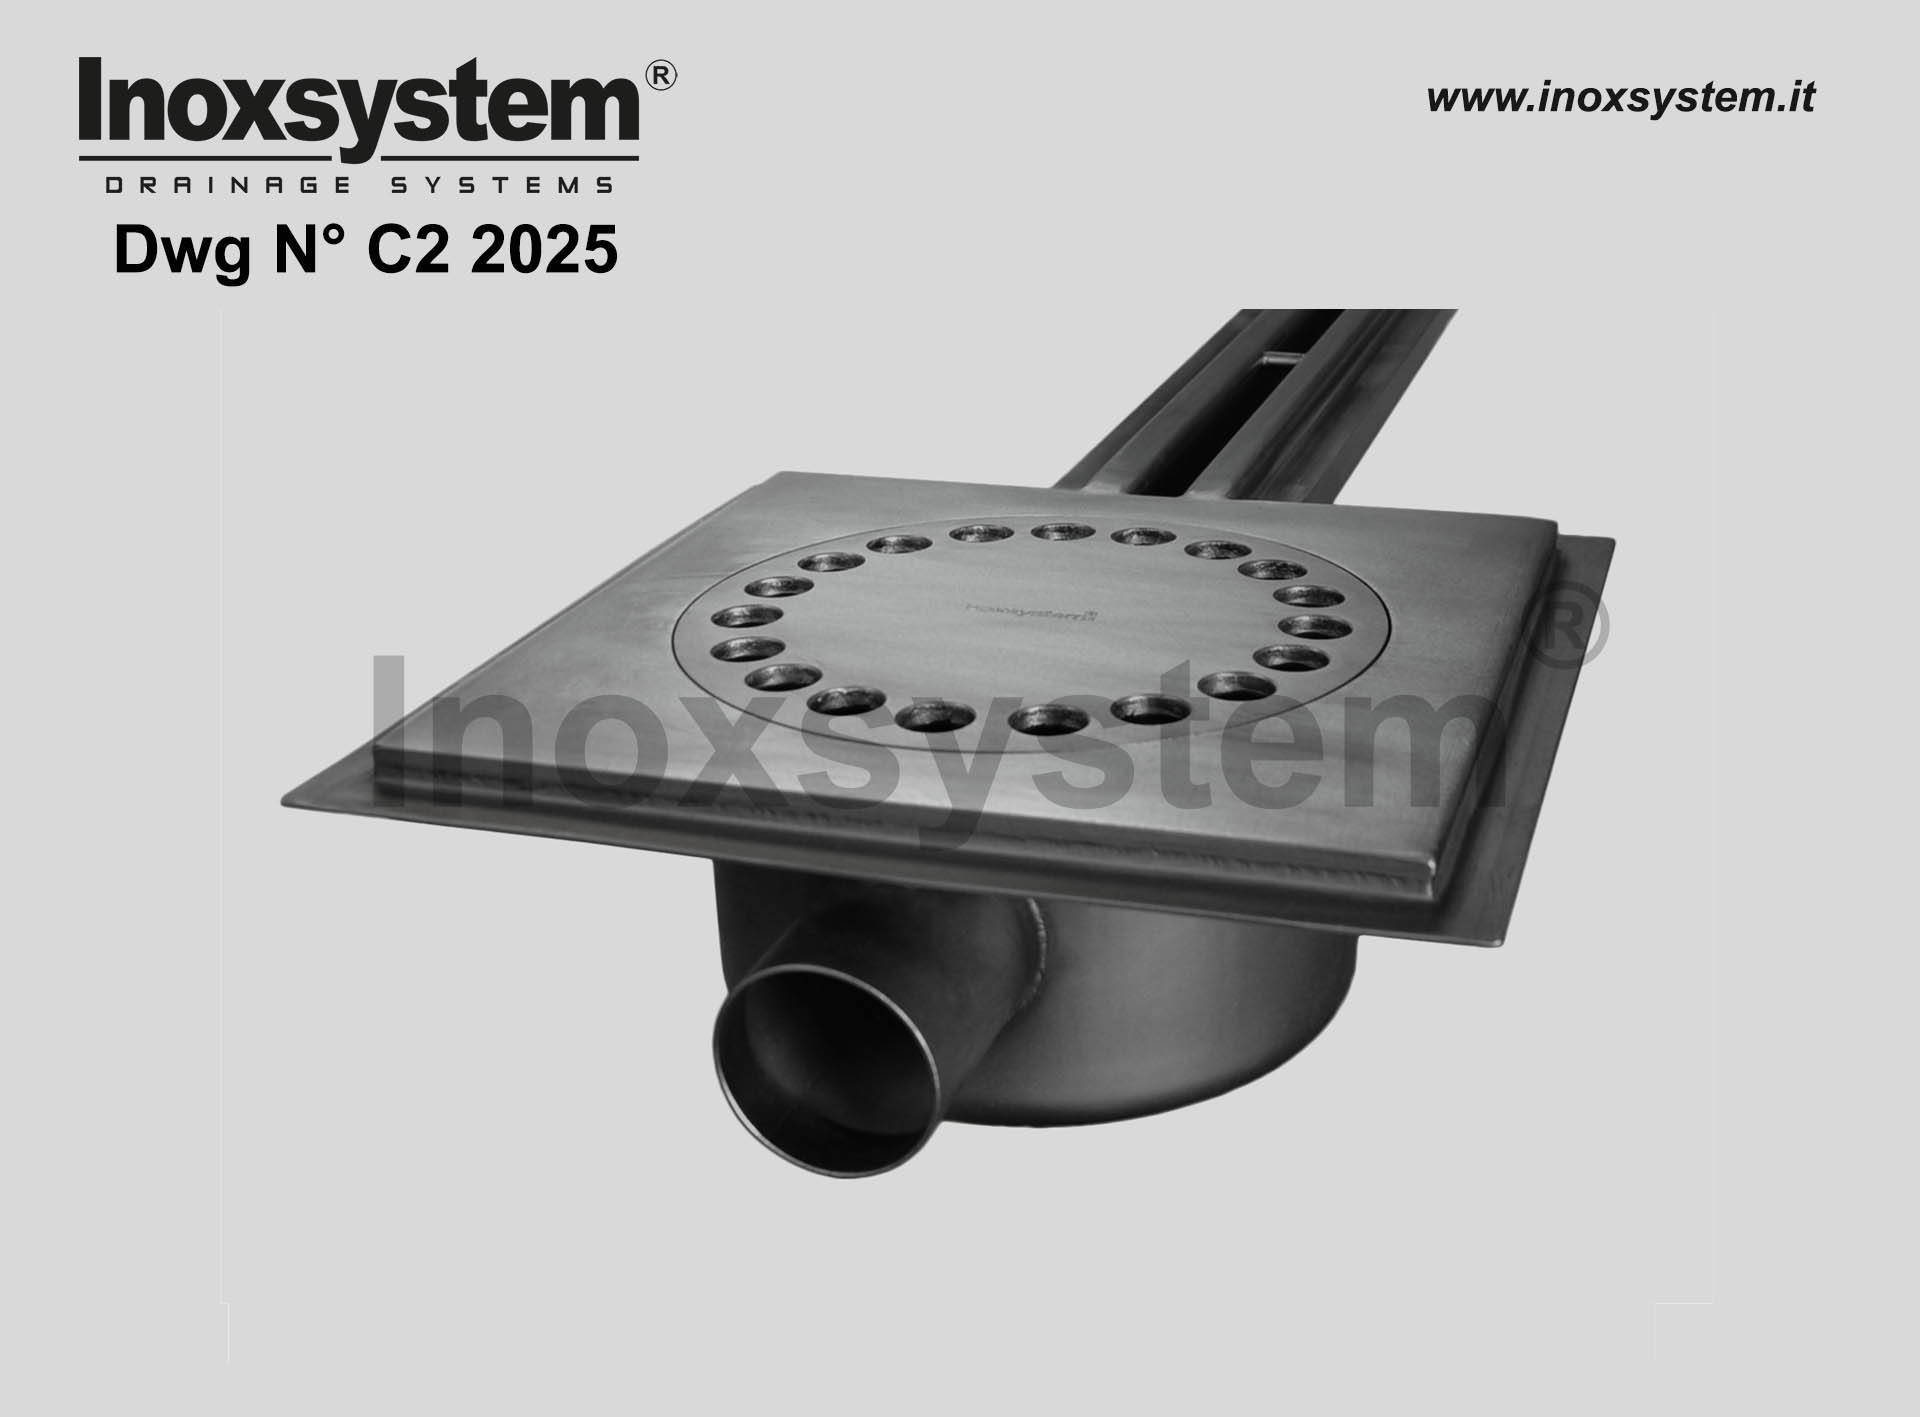 Stainless steel waterproof membrane holder for channels with standard slot